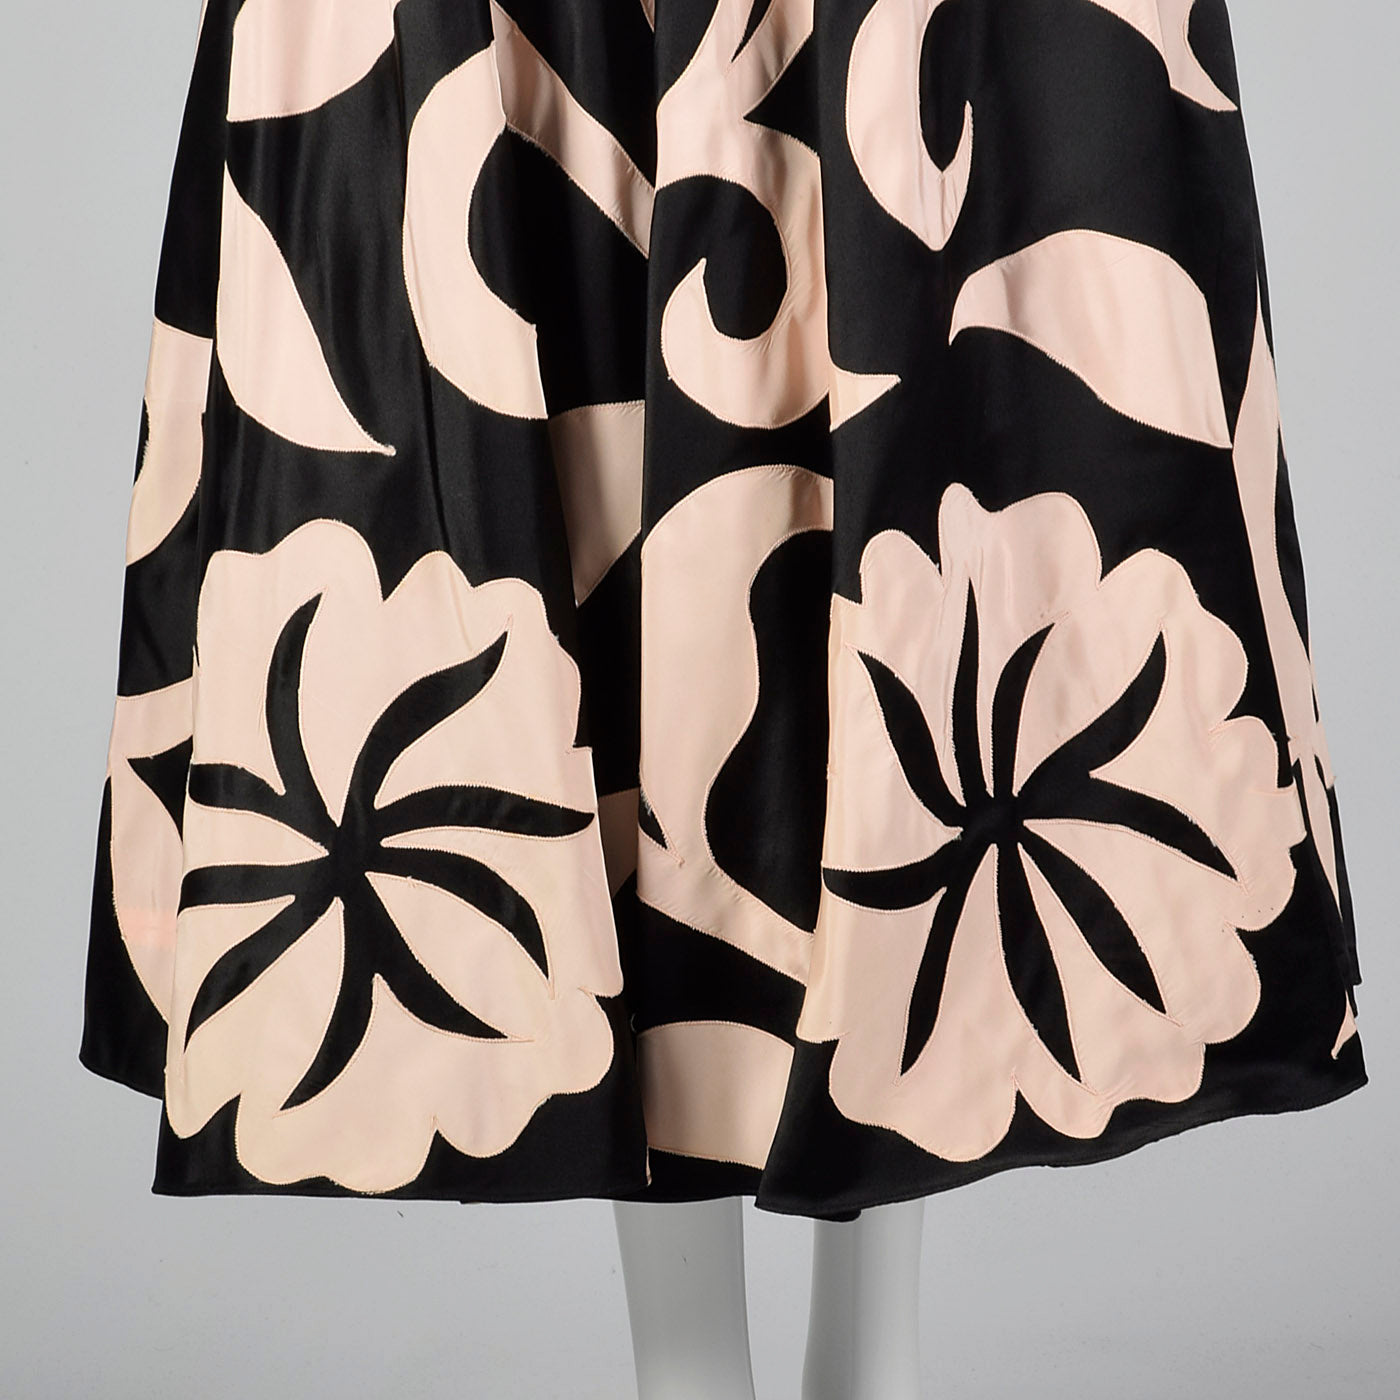 1980s Black Party Dress with Applique Full Circle Skirt